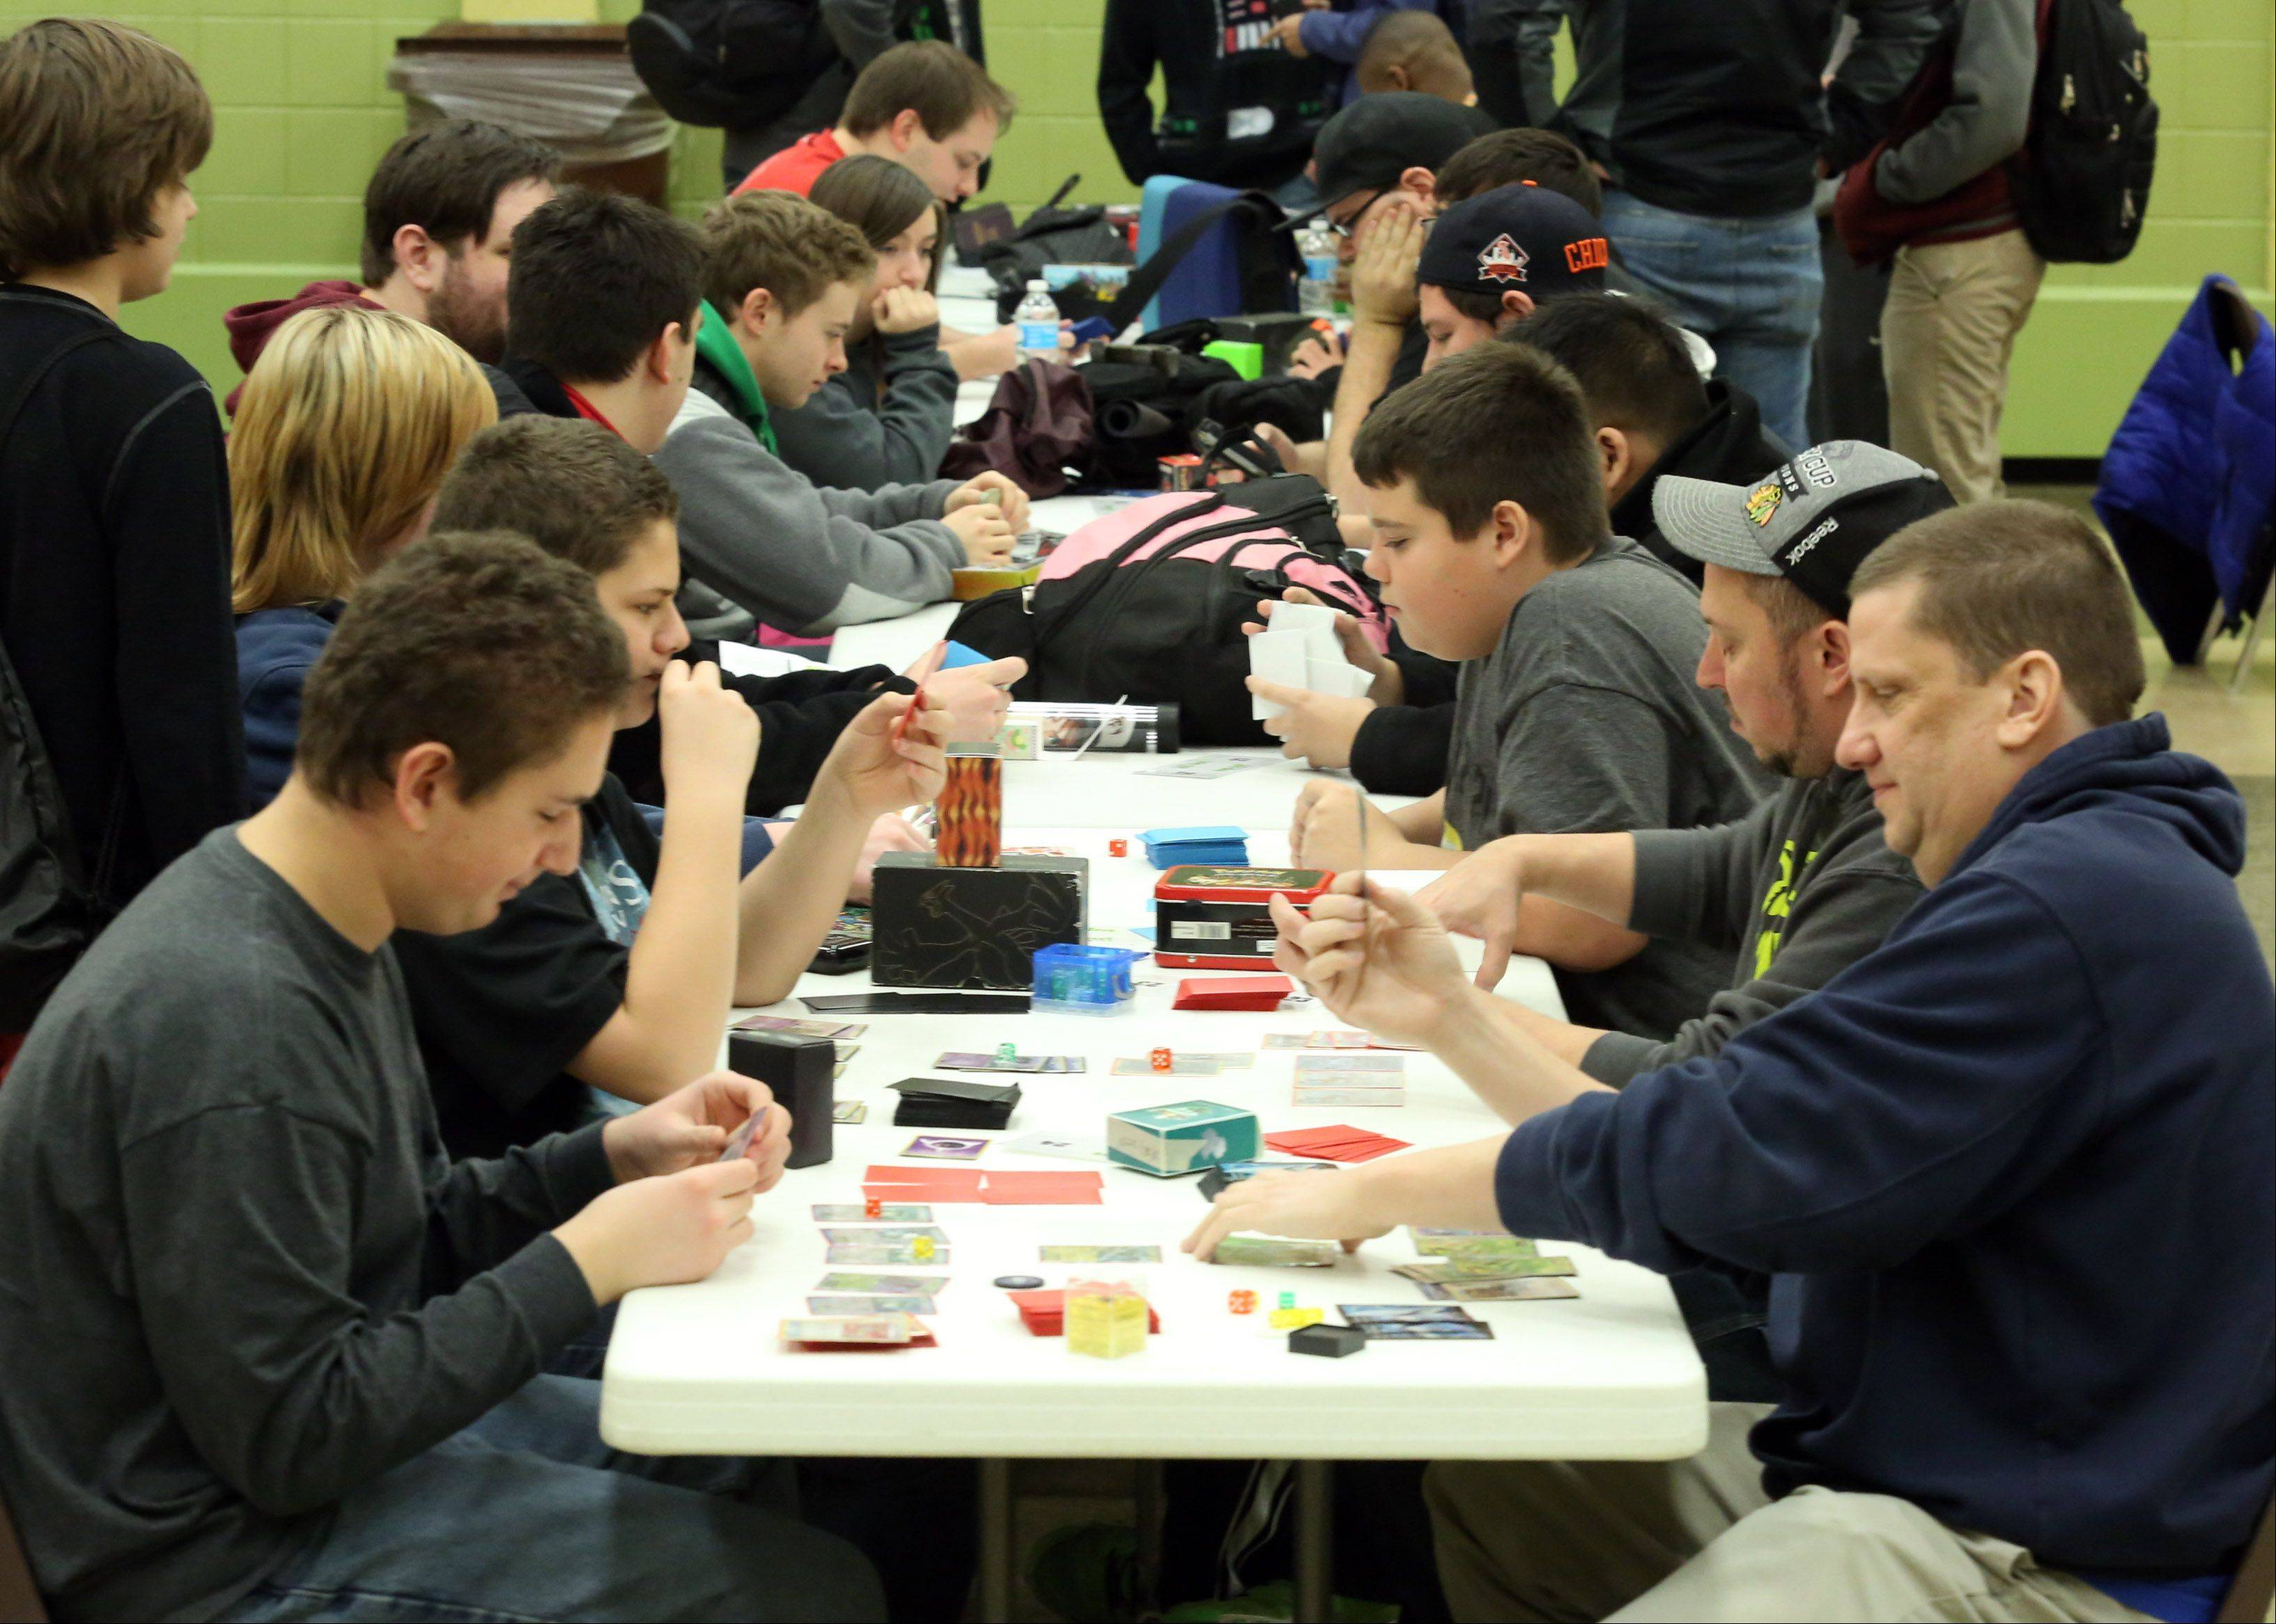 About 60 people competed in the Pokémon City Championships, according to organizer Jimmy Ballard of Plainfield, second from front at right.